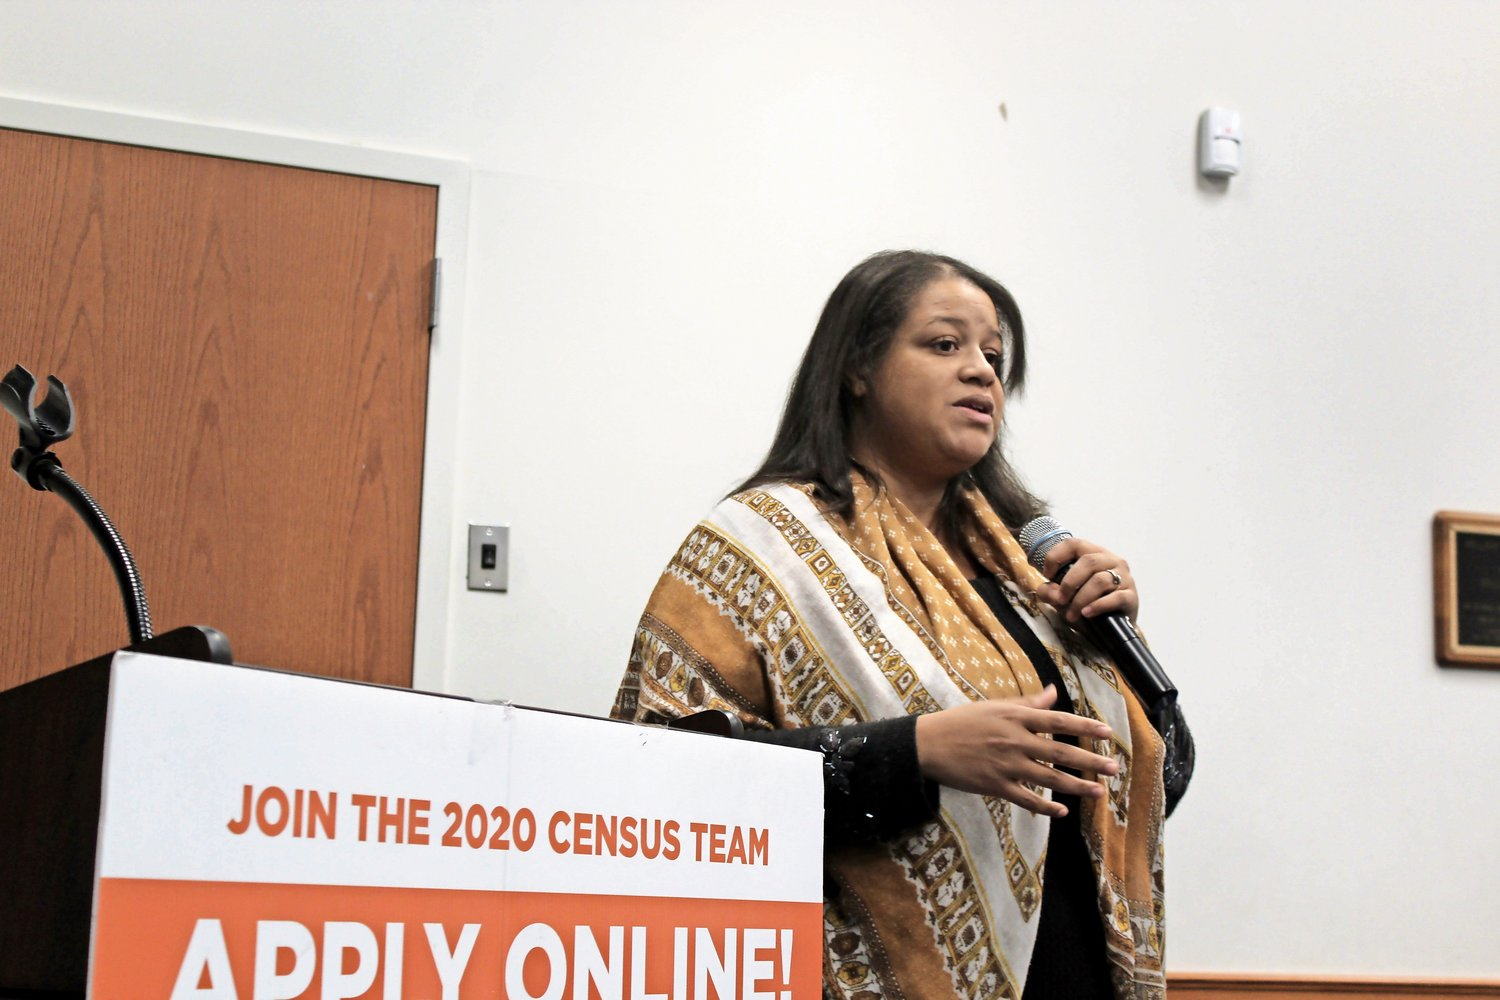 Assemblywoman Michaelle Solages hosted the Census Job Fair.